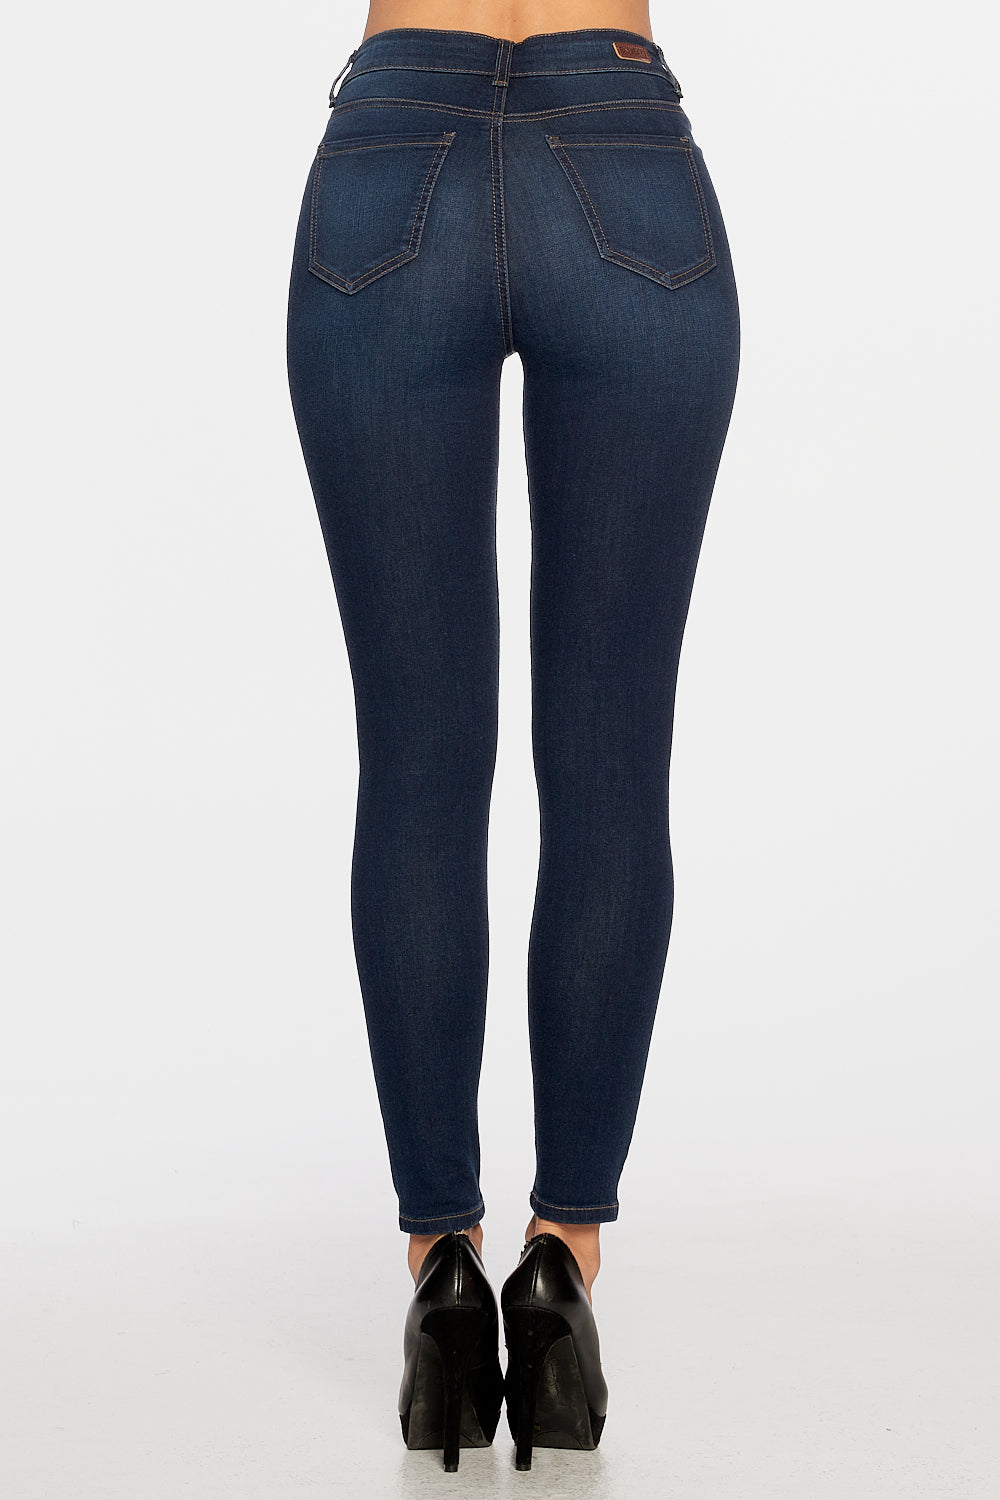 High-Rise Ankle Skinny Classic Denim - EP3198